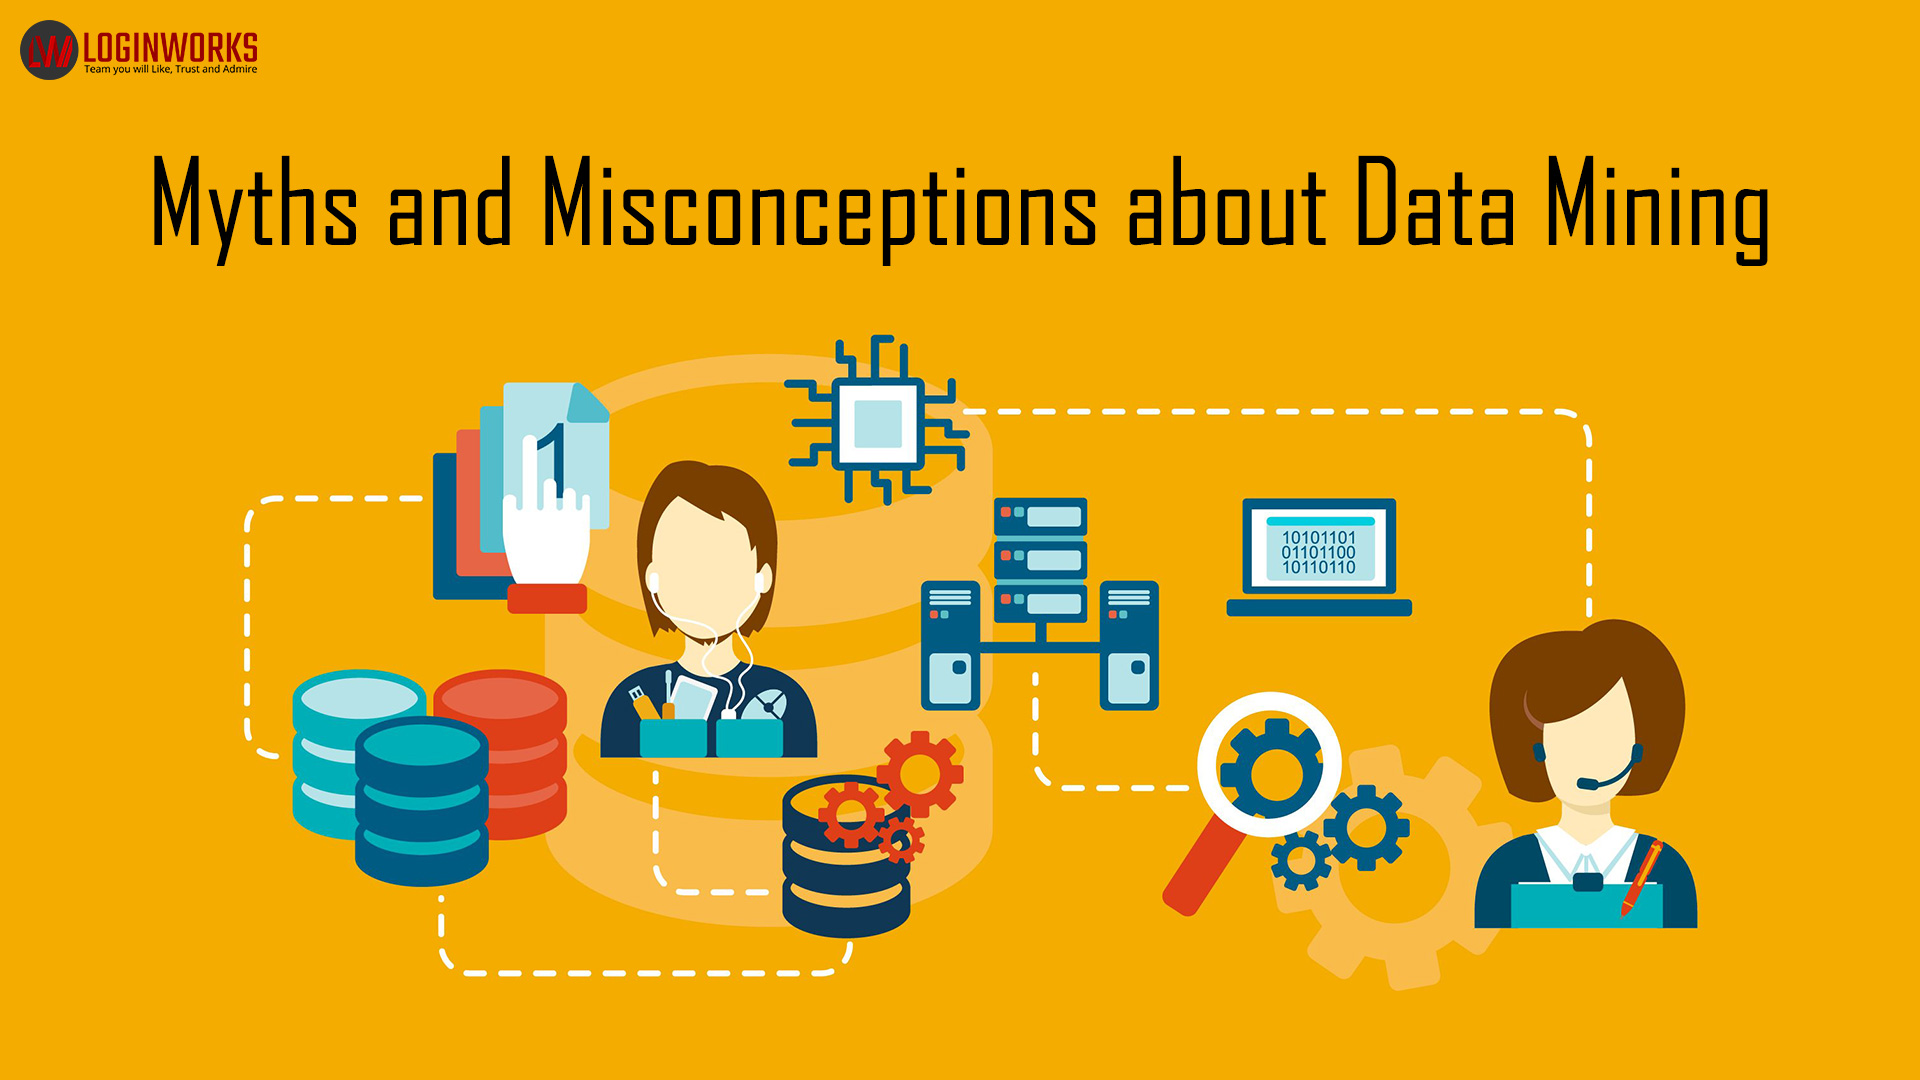 Myths and Misconceptions about Data Mining